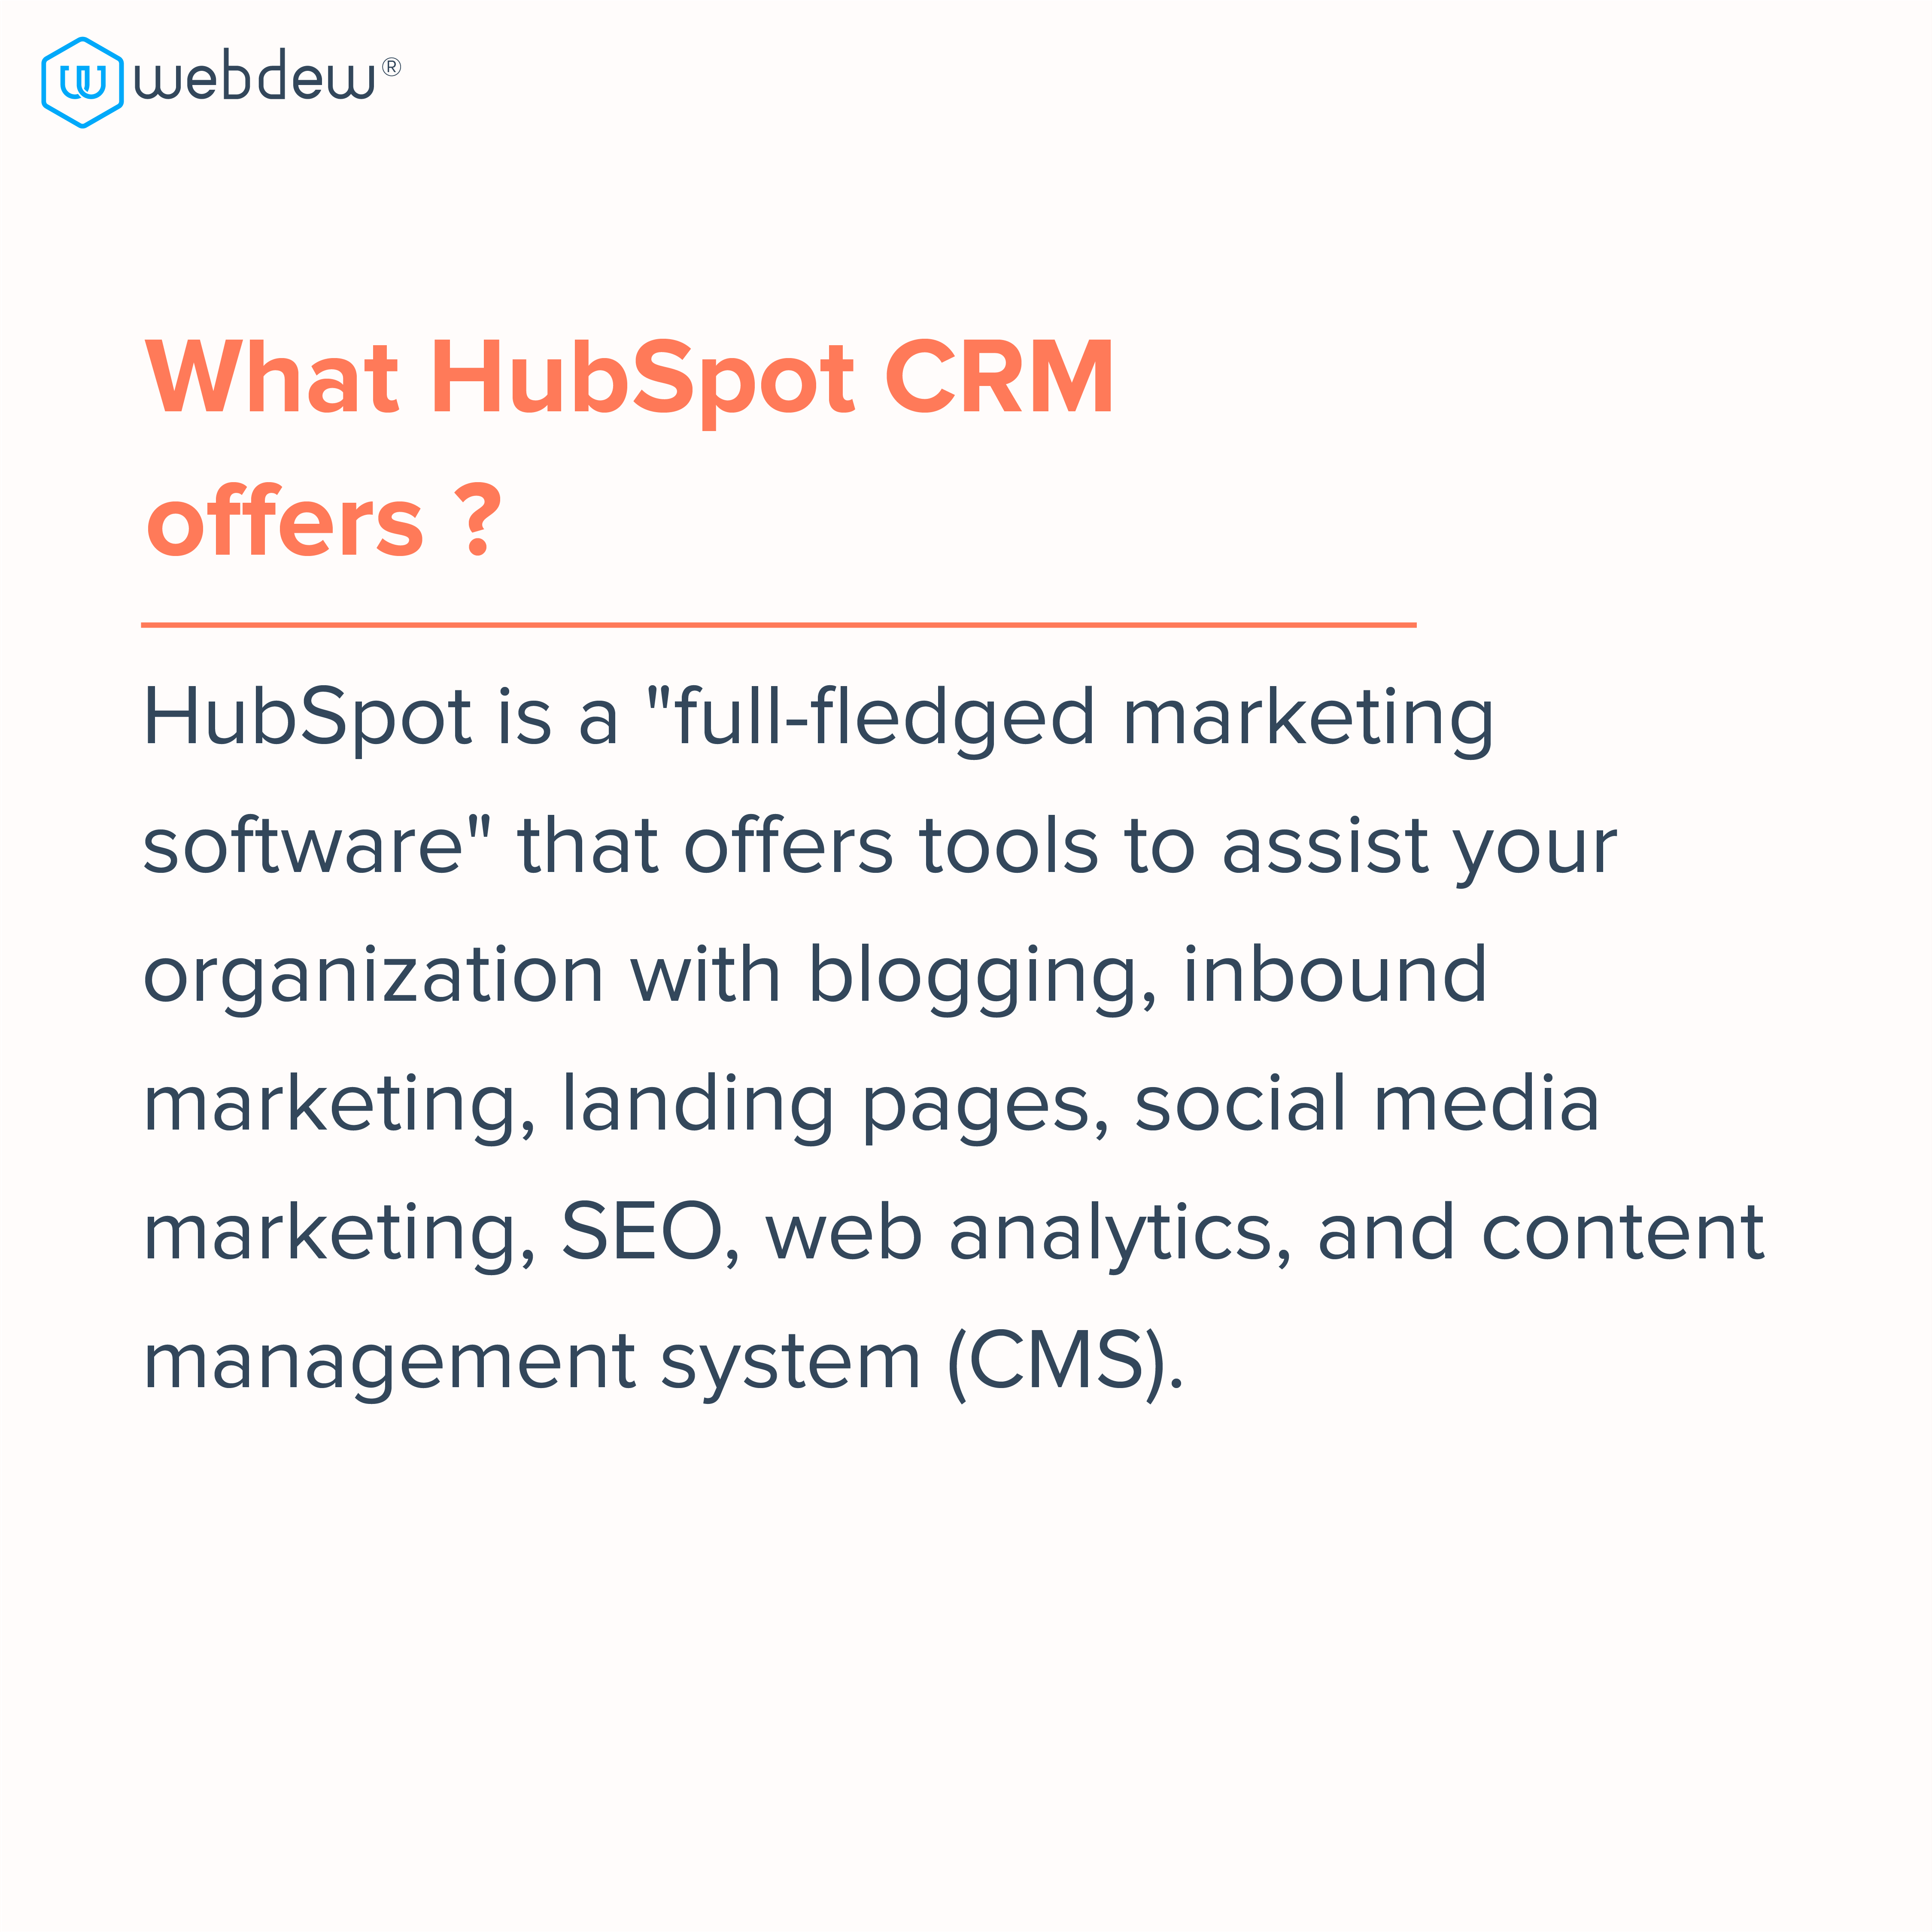 3. what hubspot CRM offers